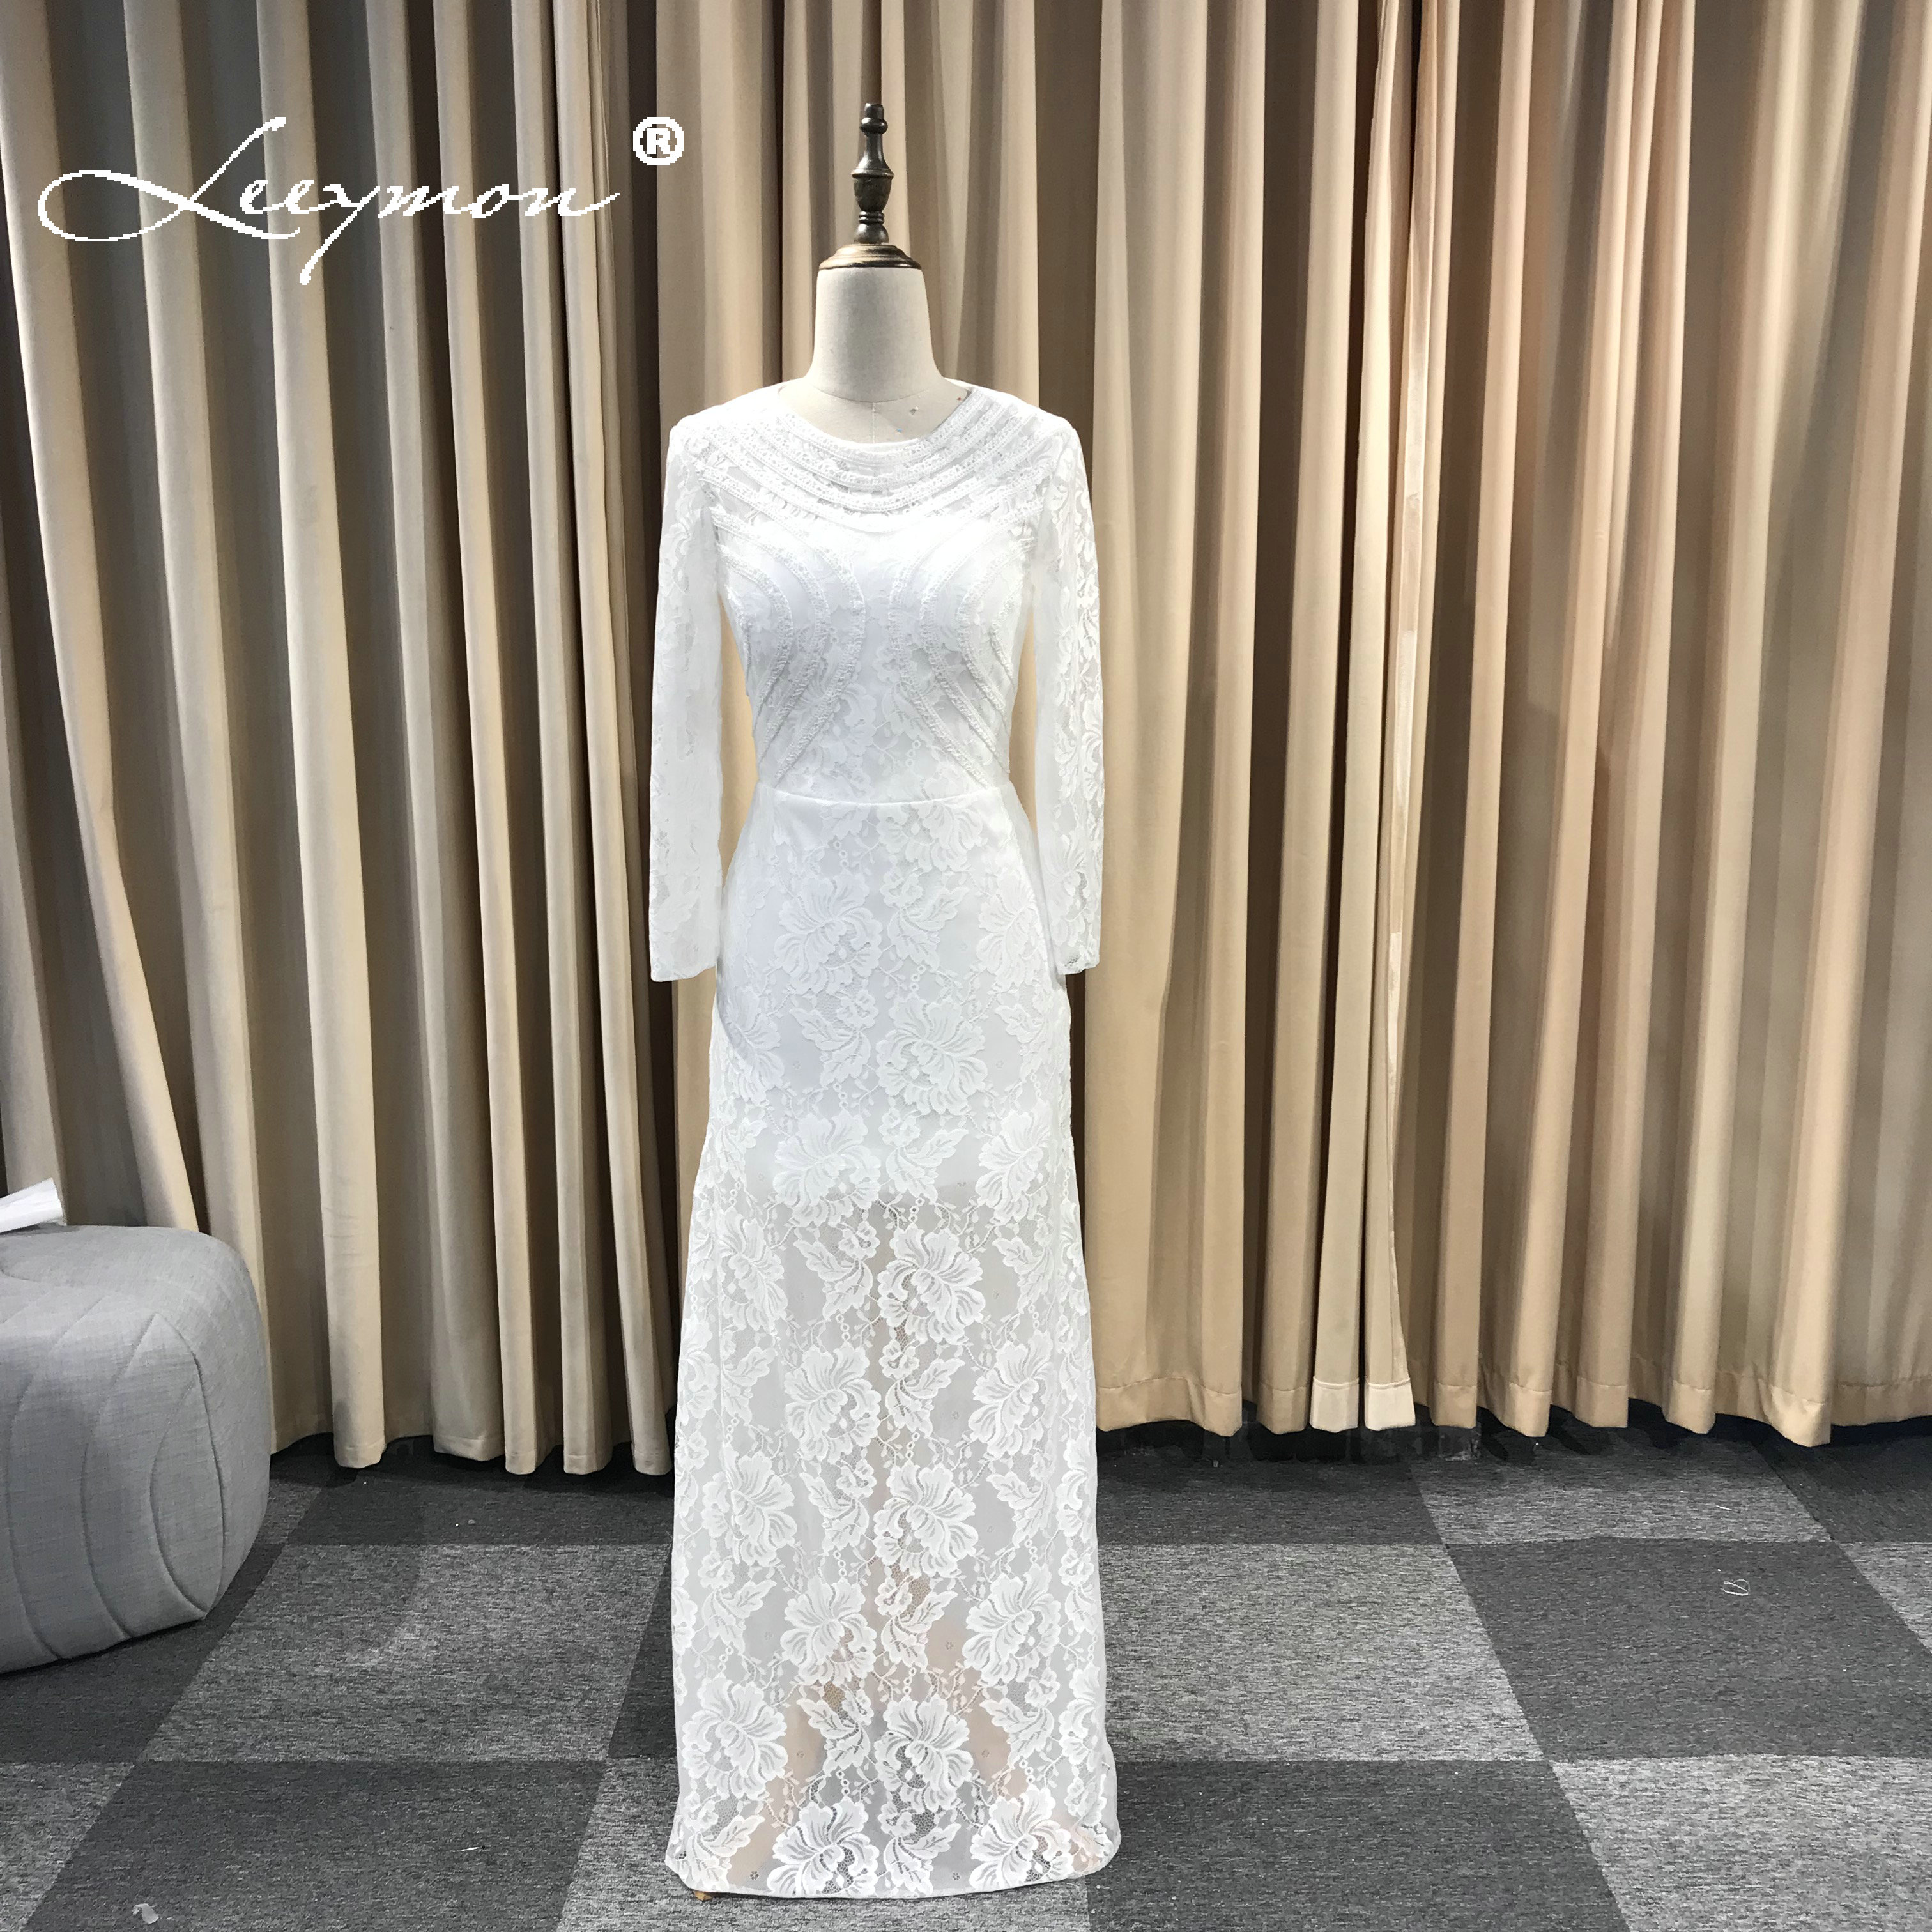 Leeymon Round Neck Full Sleeves Lace Wedding Dress Floor-Length Wedding Dress Cut out Back Gown Robe de Mariee